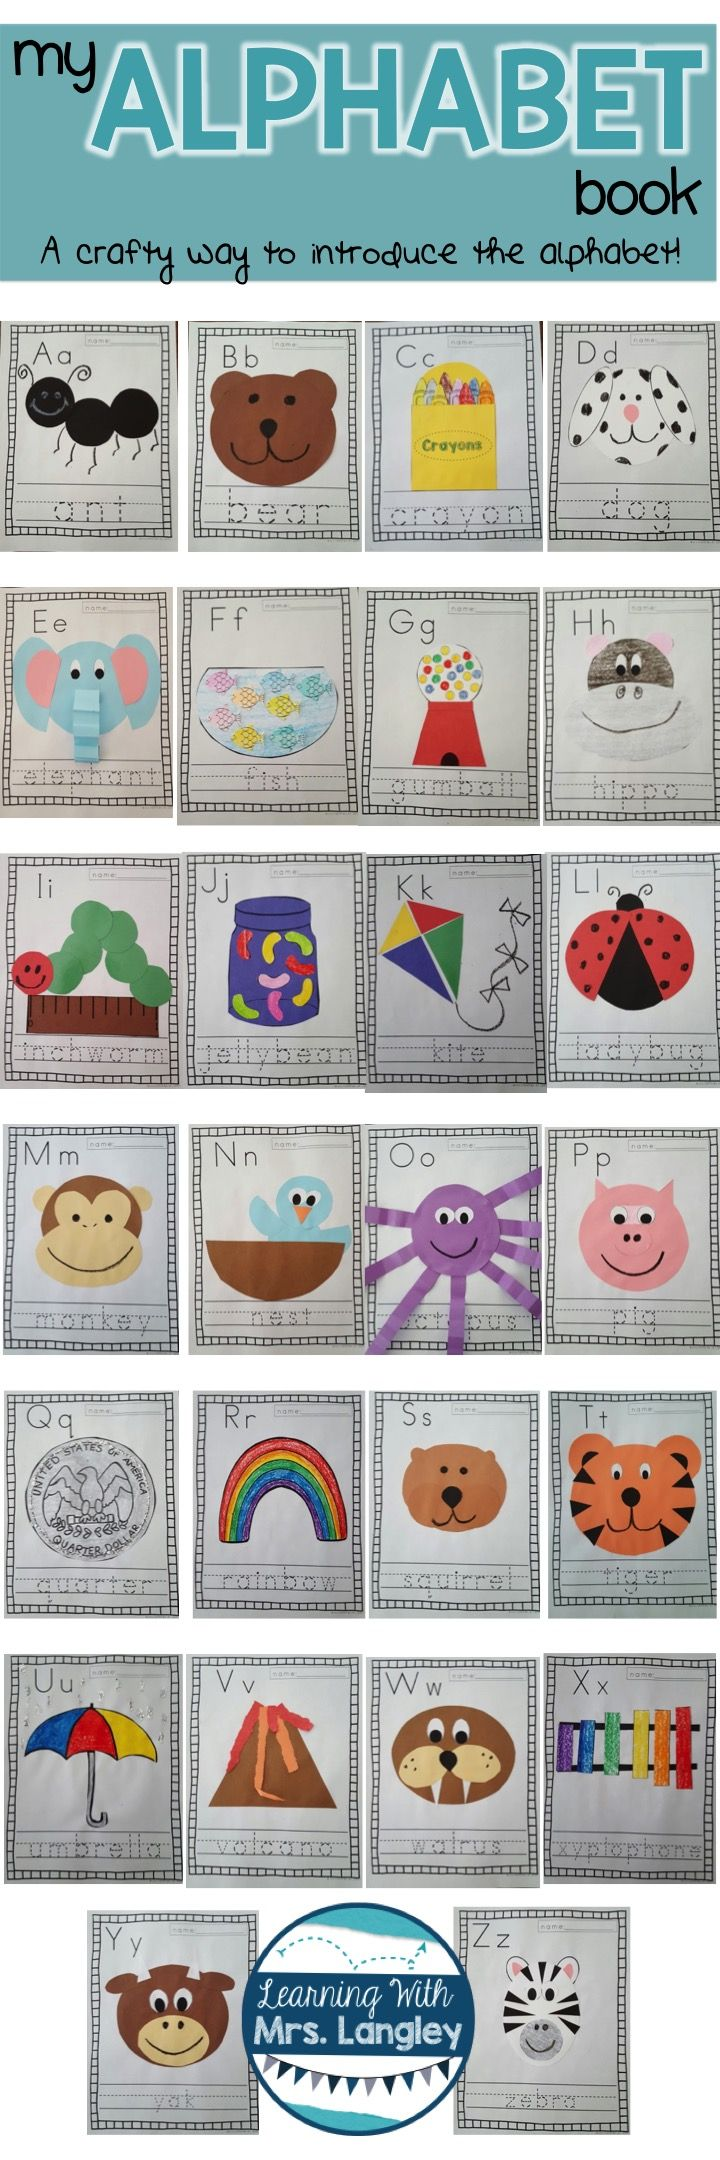 This alphabet book is a great way to introduce the alphabet during the first weeks of school. Introduce a letter a day and